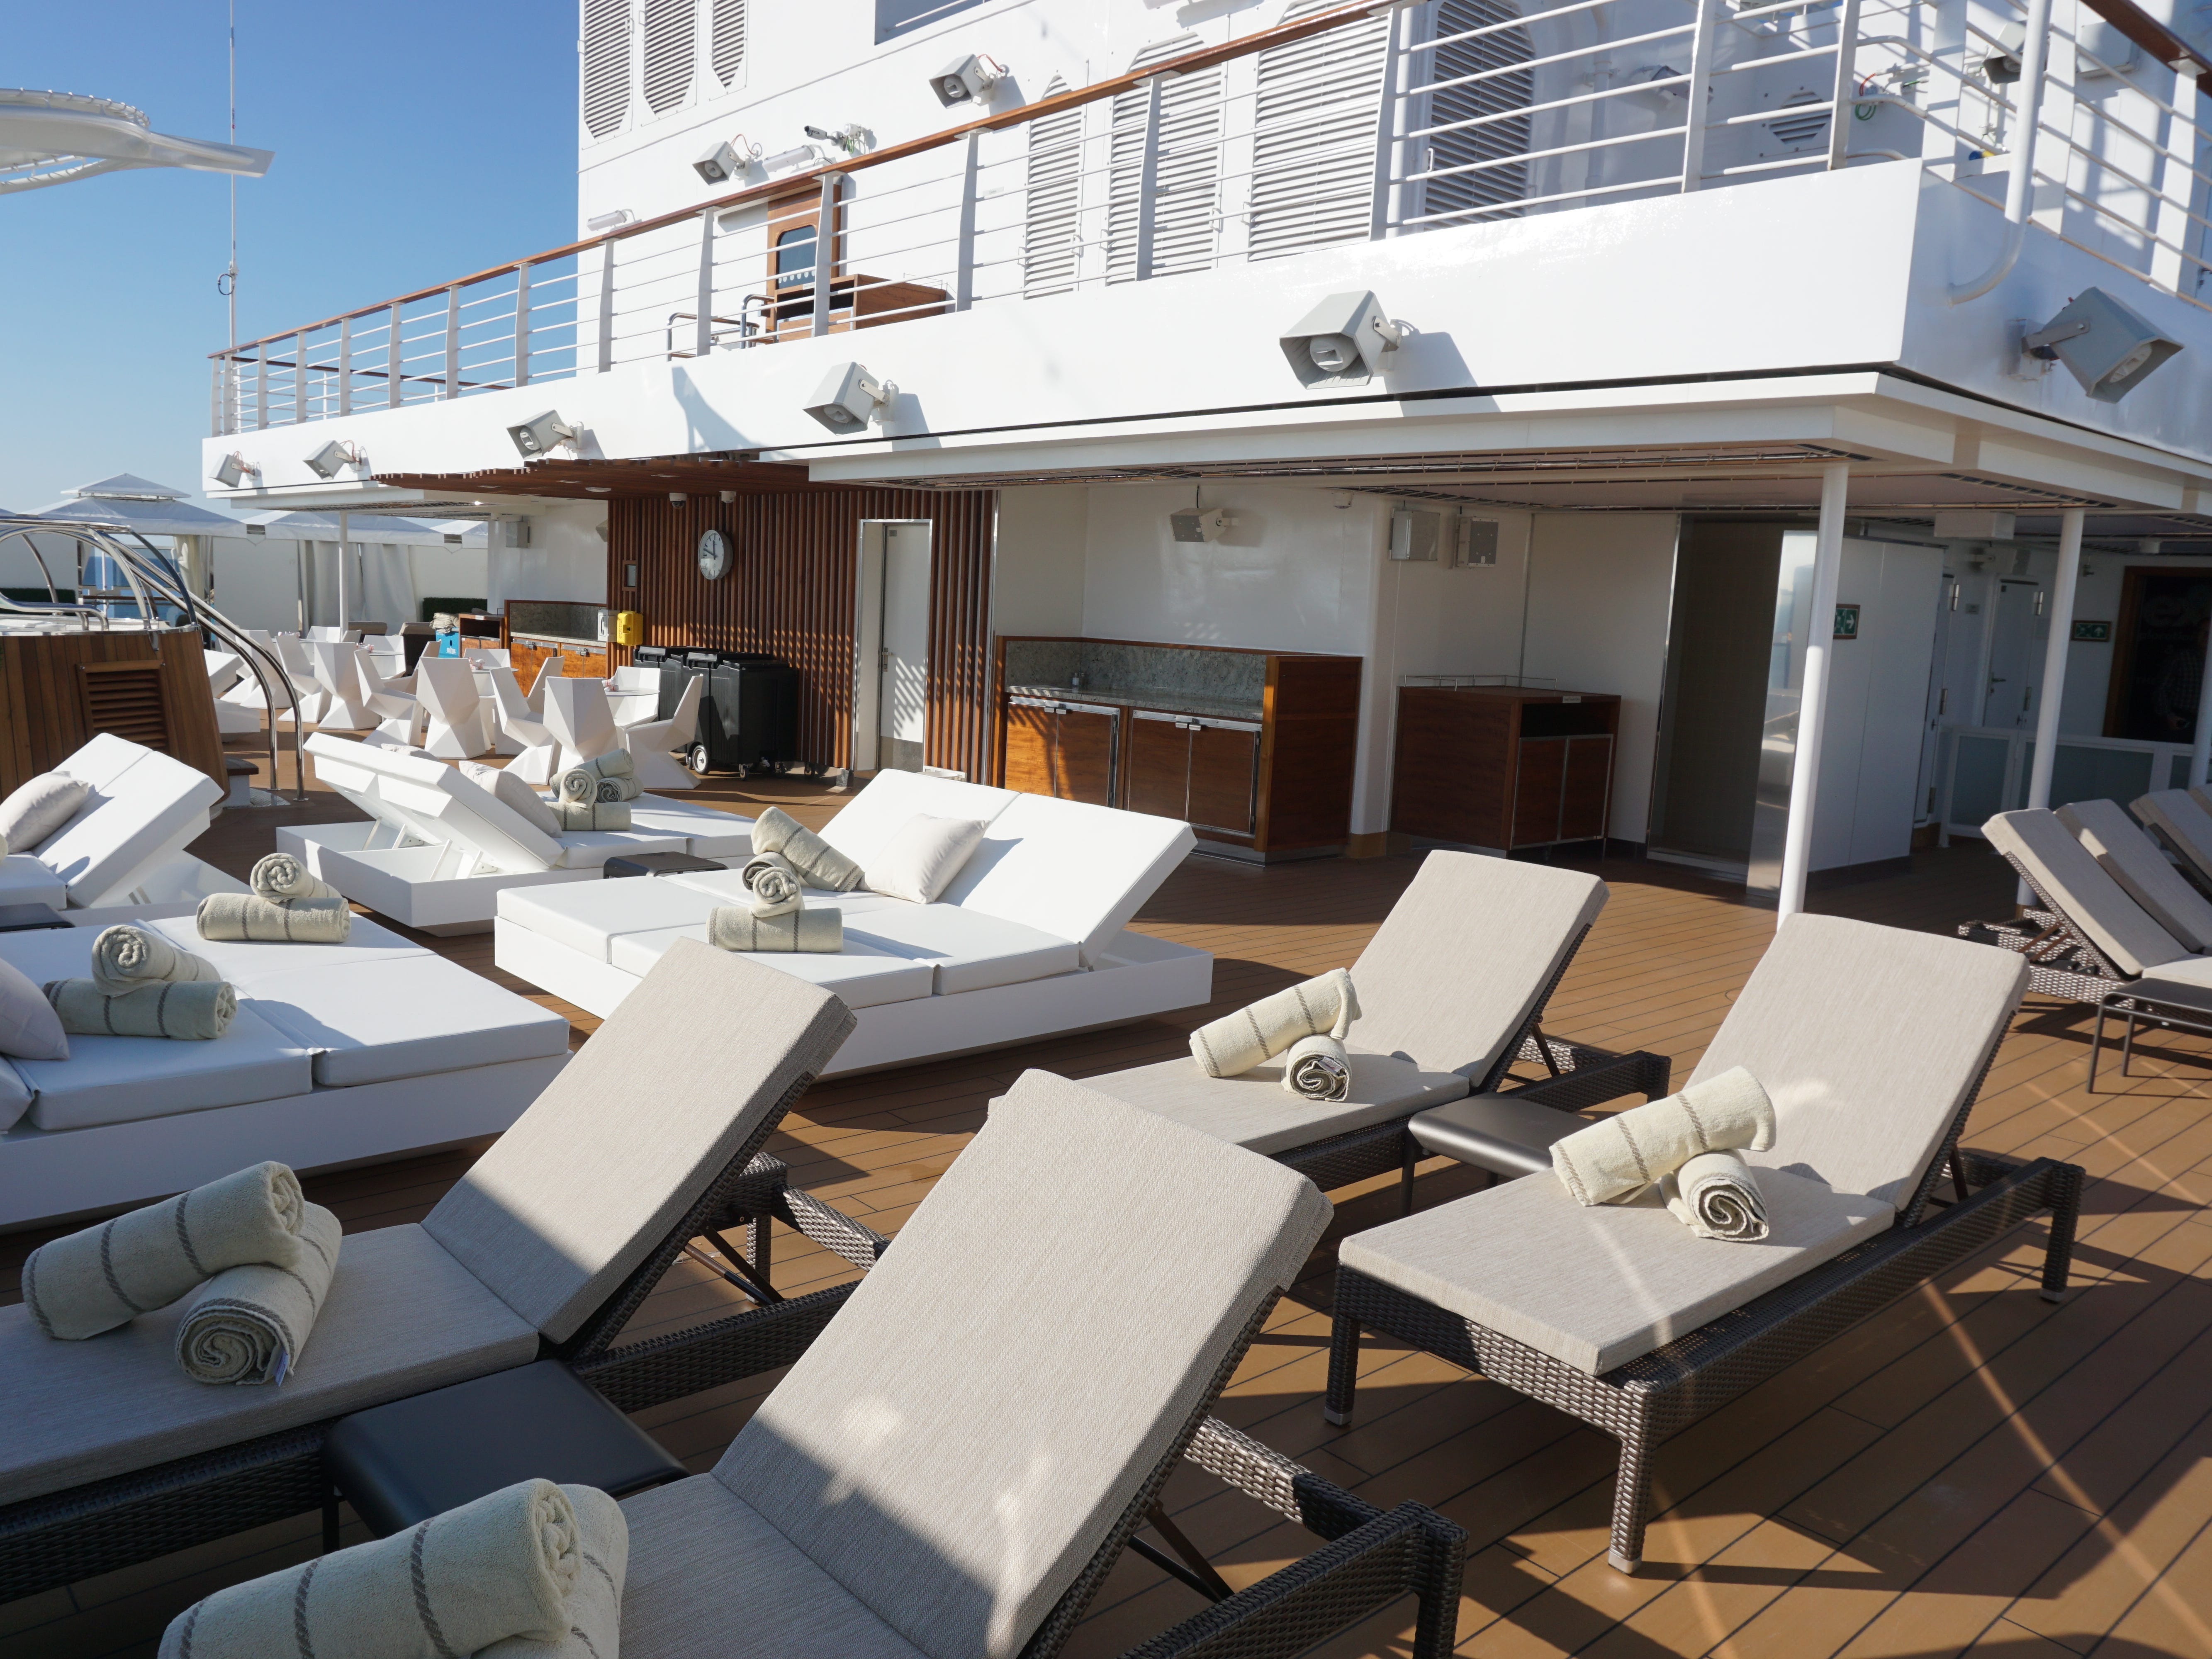 The Retreat is on the next level, Deck 12 (there is no Deck 13). It features open sunning space, a Jacuzzi and private cabanas for rent.